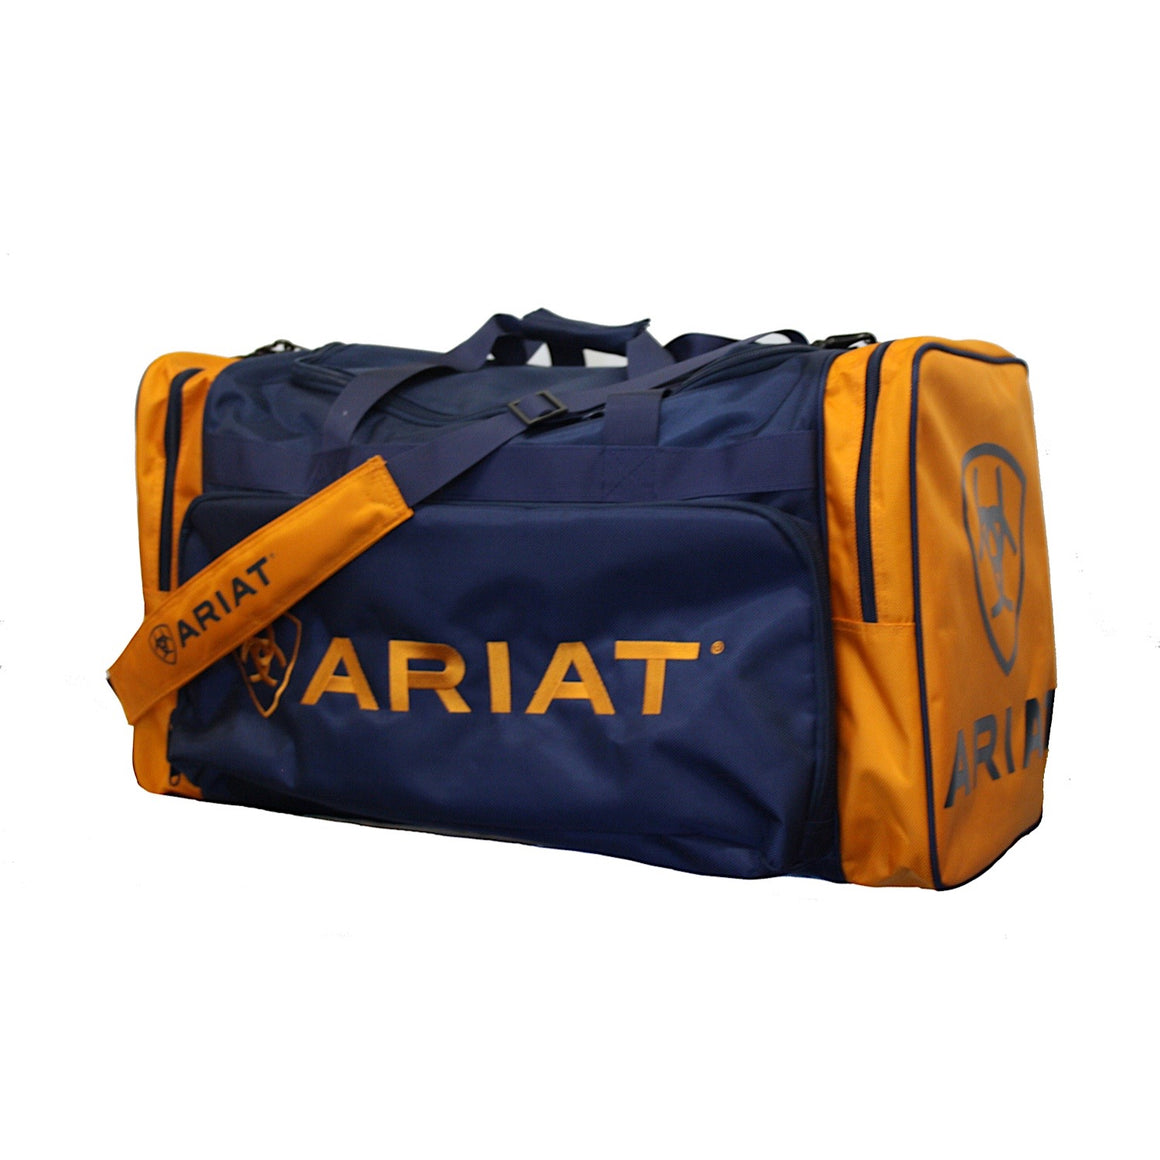 Ariat Gear Bag Orange/Navy 4-600OR